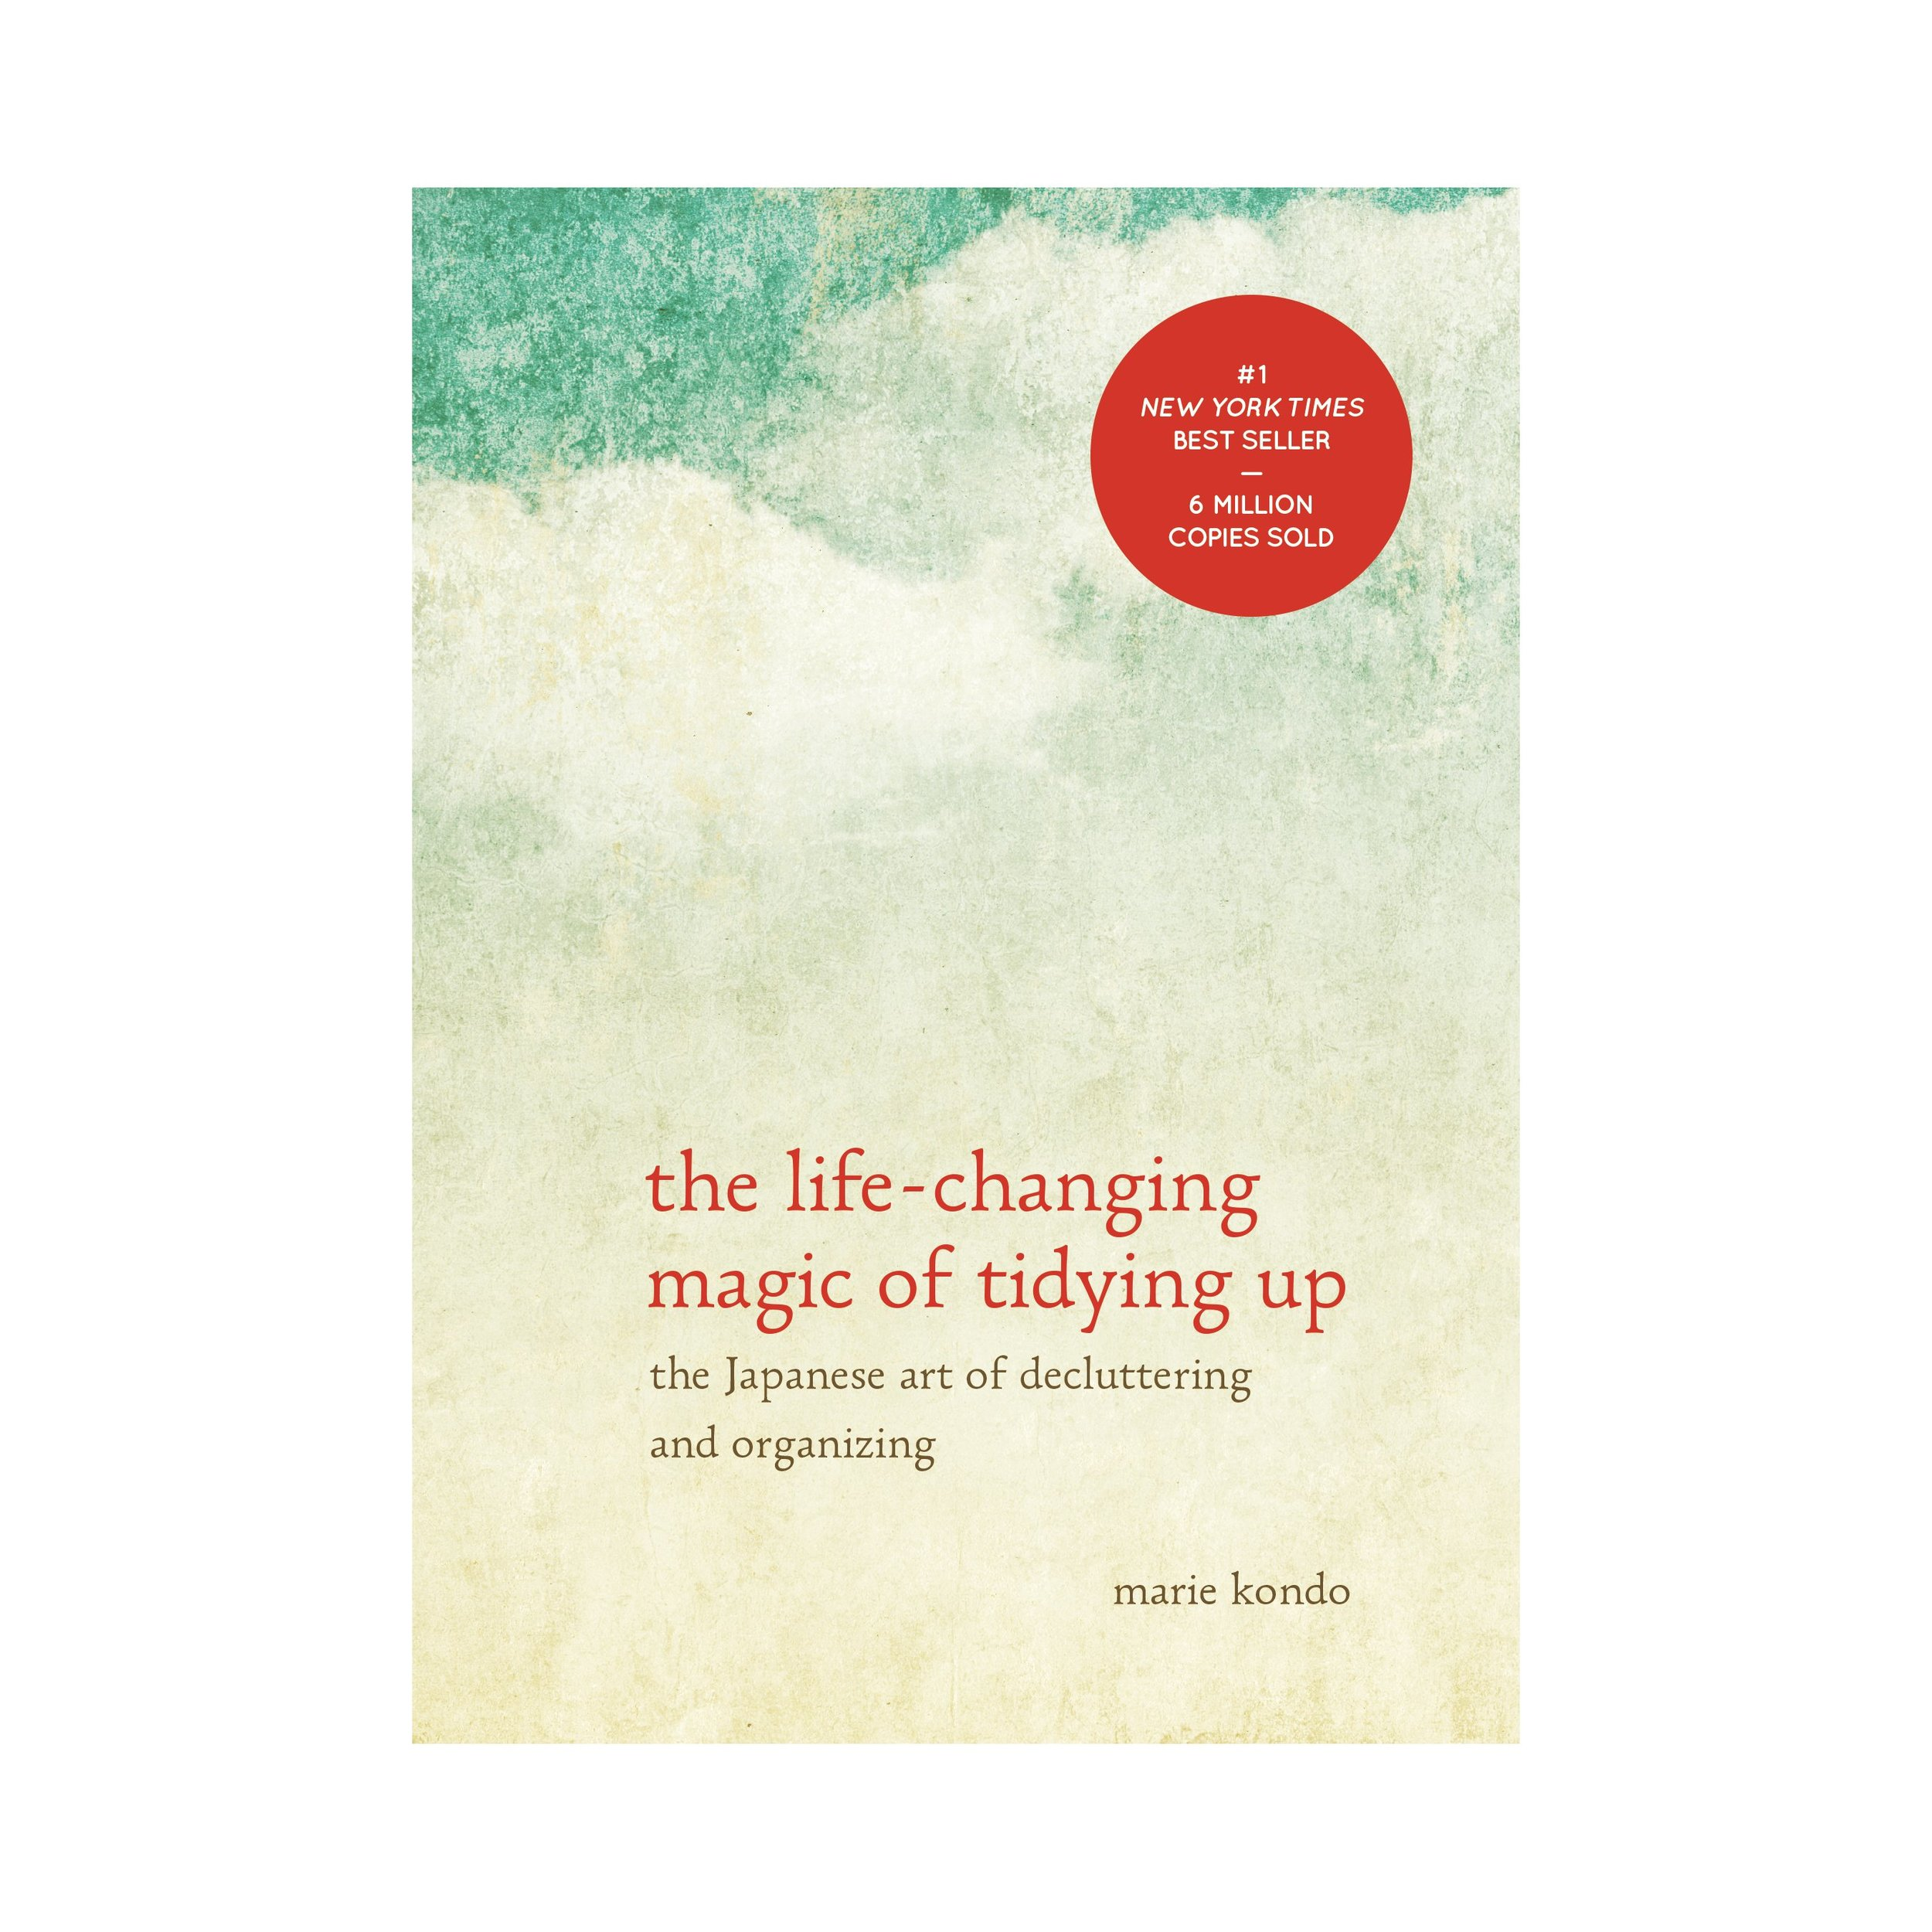 The Life-Changing Magic by Marie Kondo